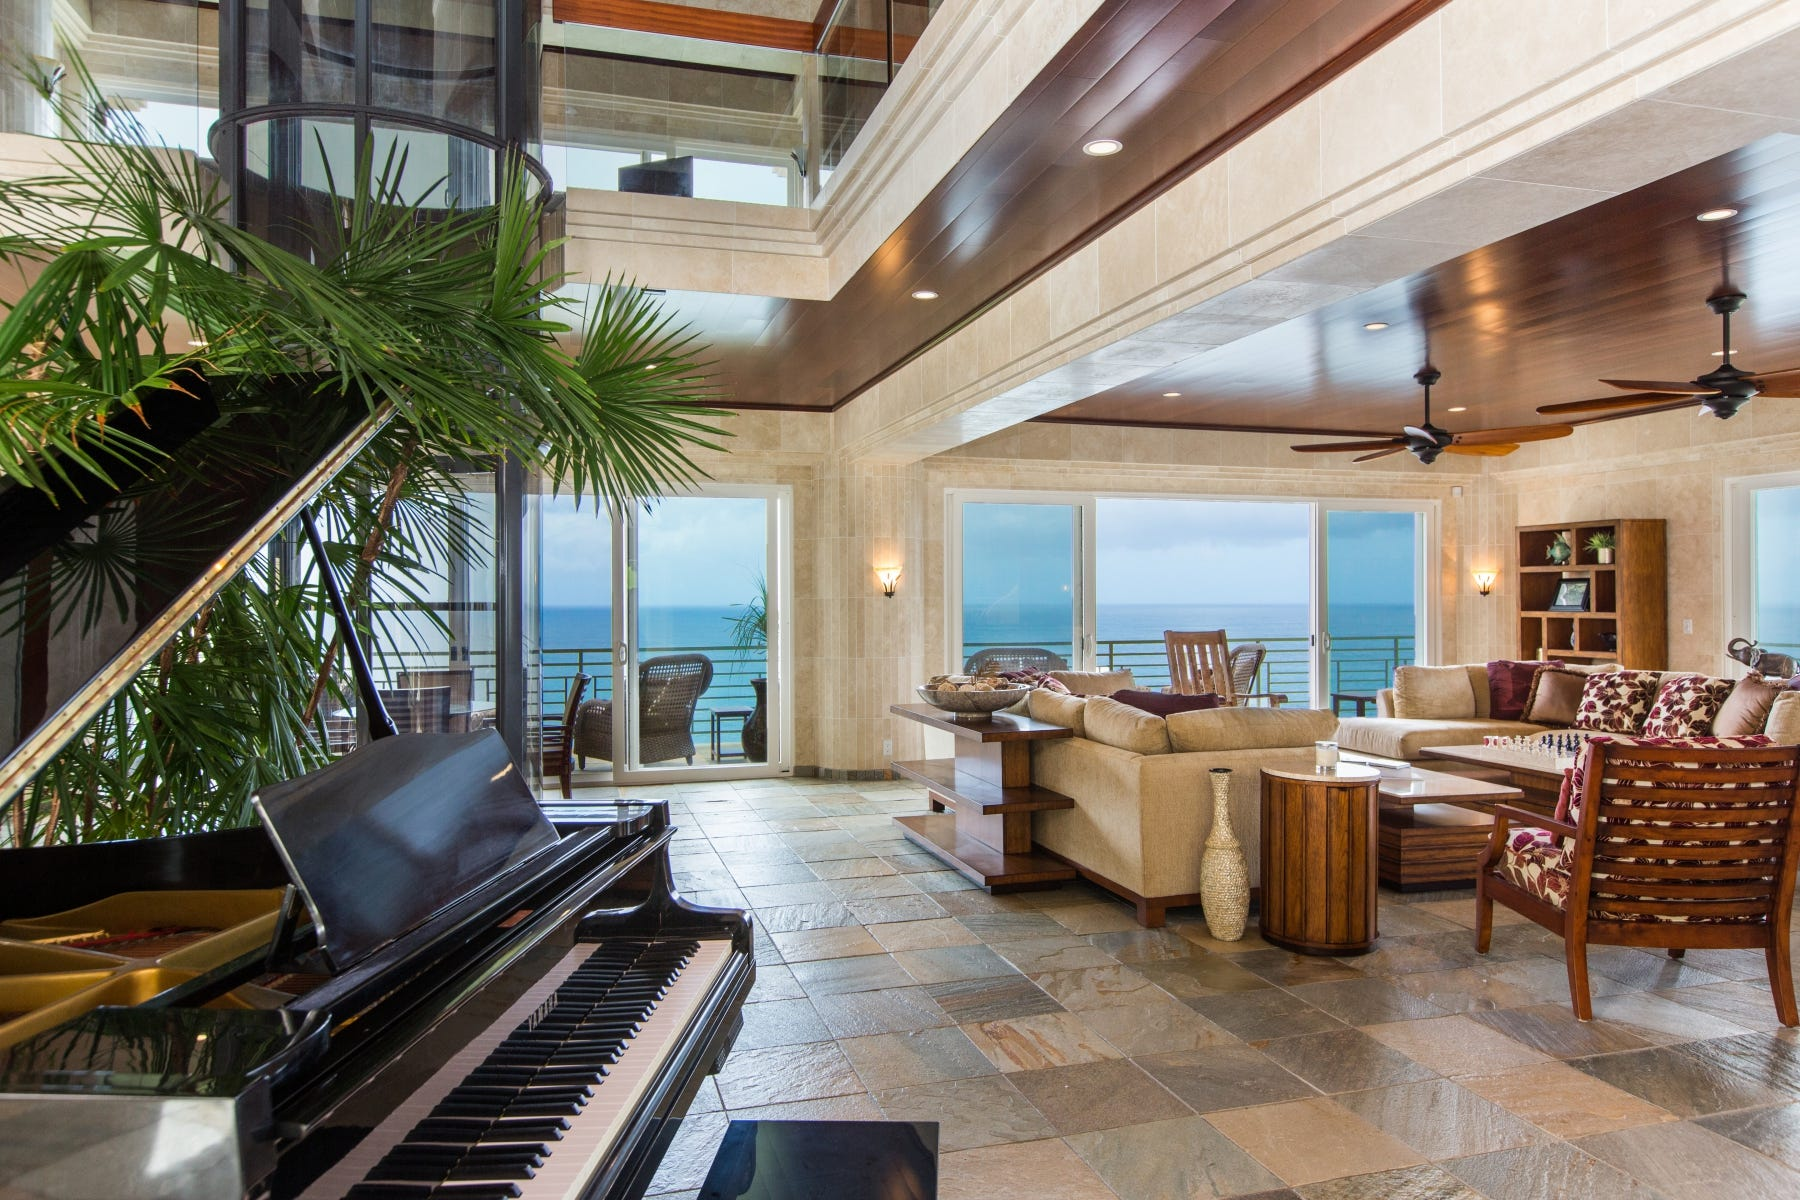 Justin Bieber Homeaway Hawaii Vacation Rental